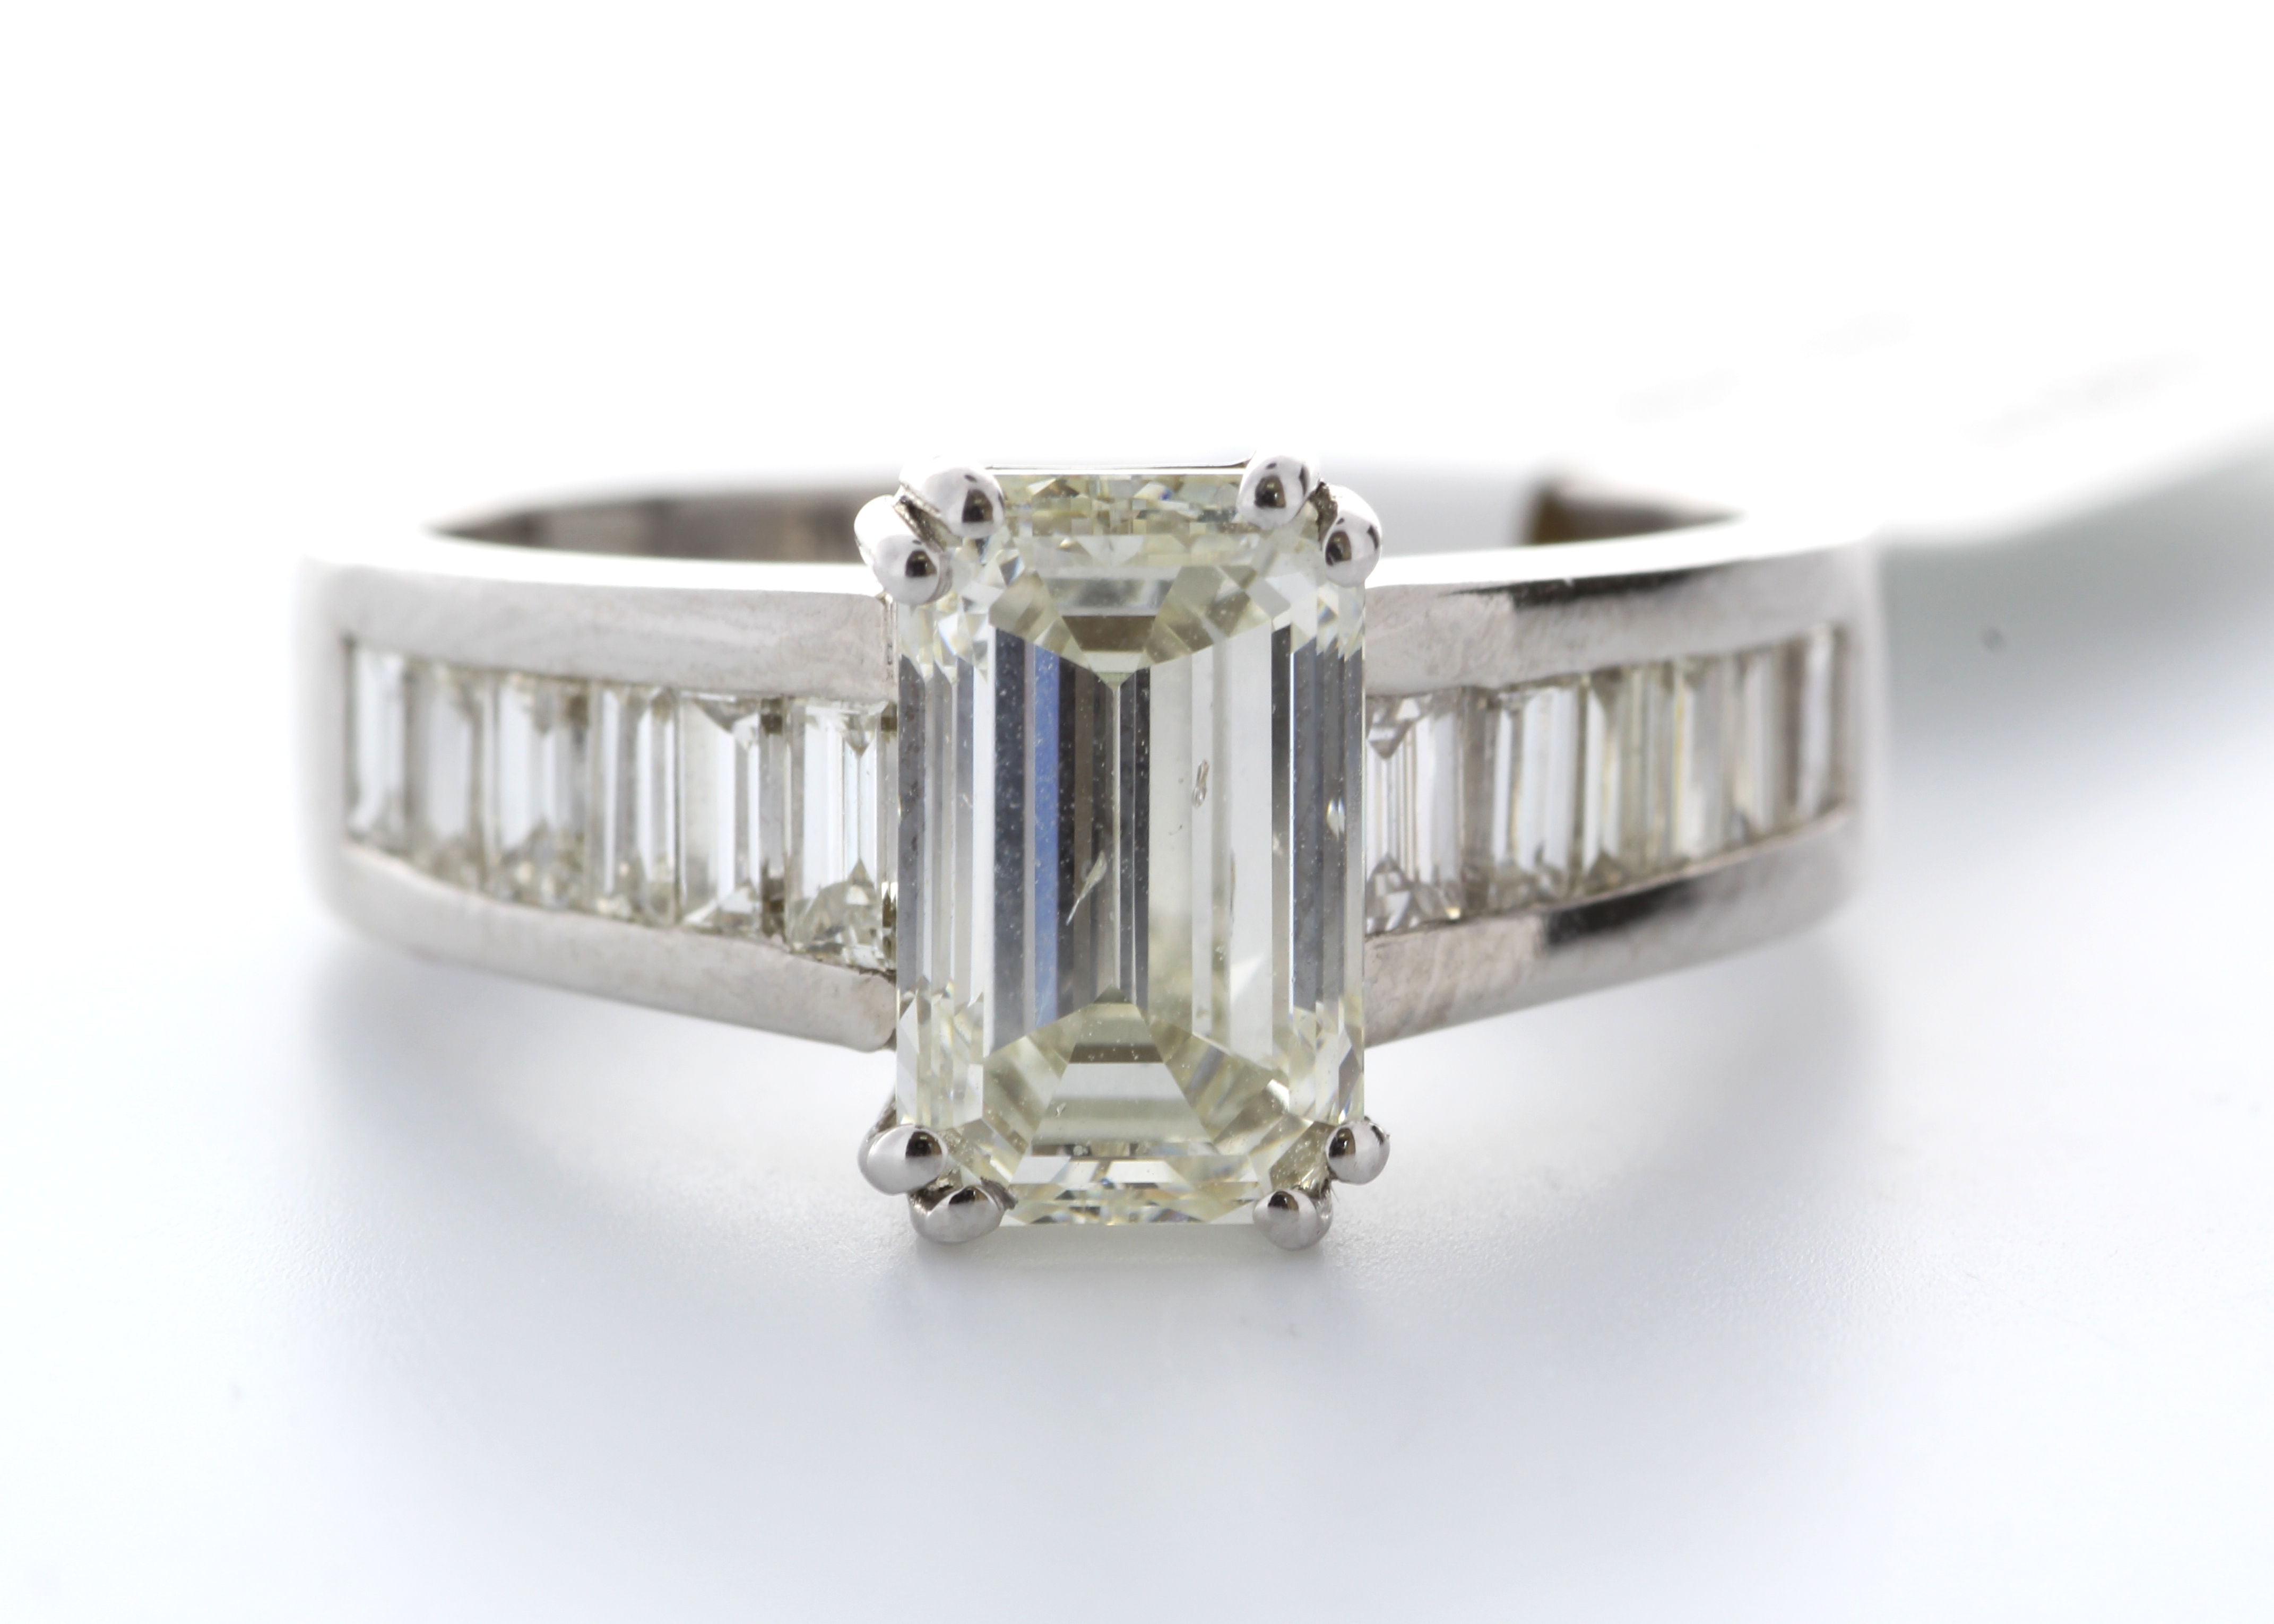 18k White Gold Single Stone Claw Set Emerald Cut With Stone Set Shoulders Diamond Ring (2.05) 2.90